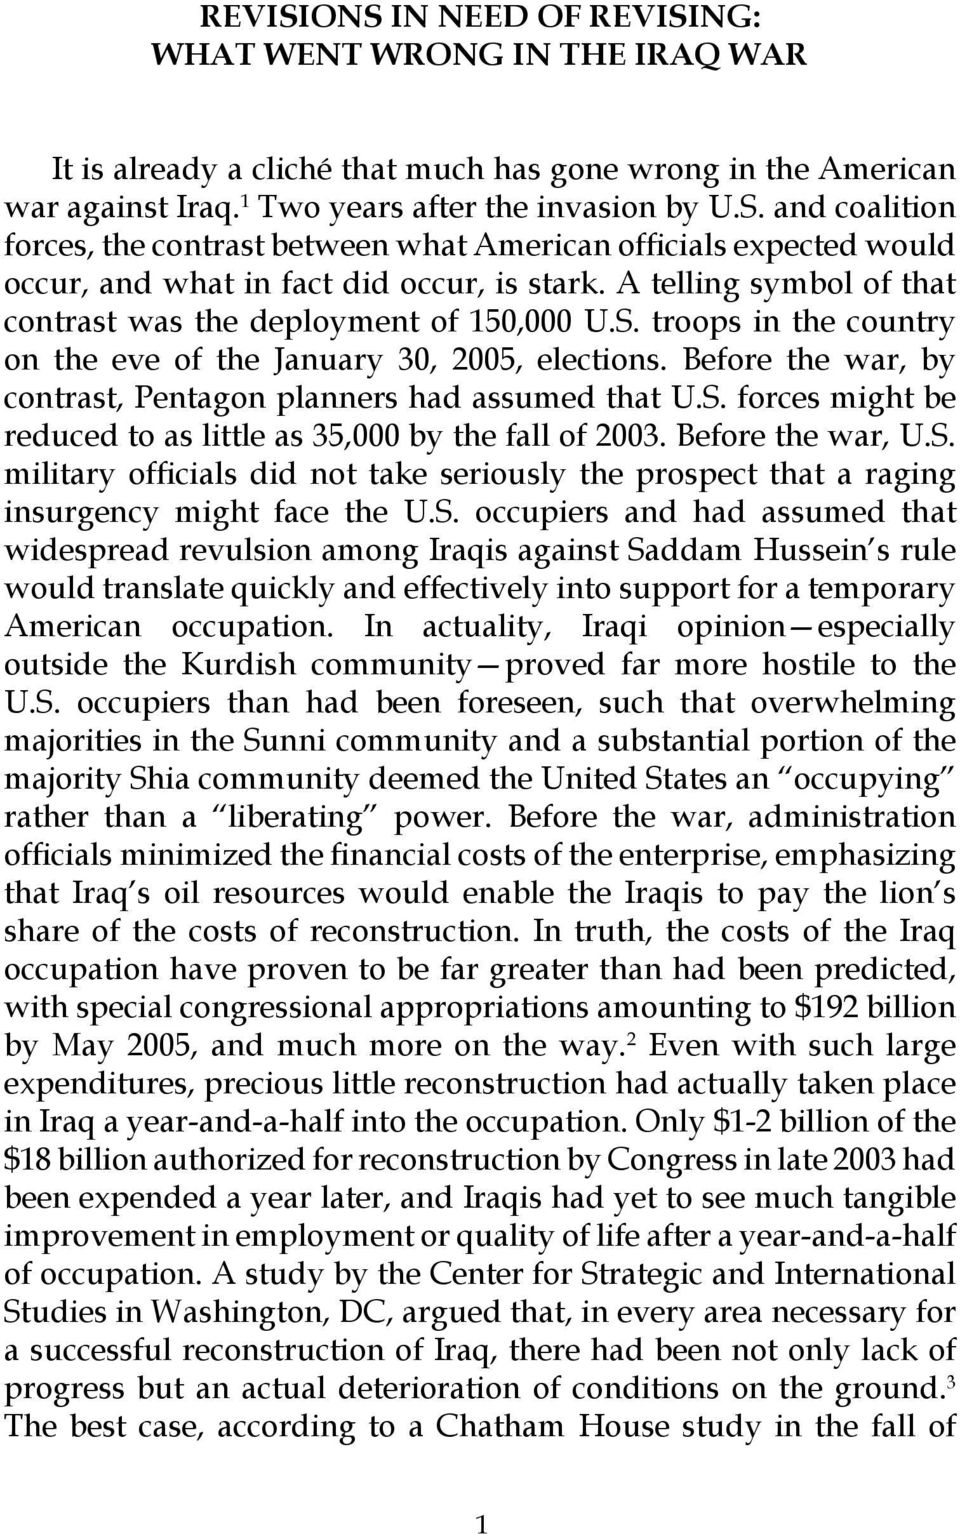 Before the war, by contrast, Pentagon planners had assumed that U.S. forces might be reduced to as little as 35,000 by the fall of 2003. Before the war, U.S. military officials did not take seriously the prospect that a raging insurgency might face the U.